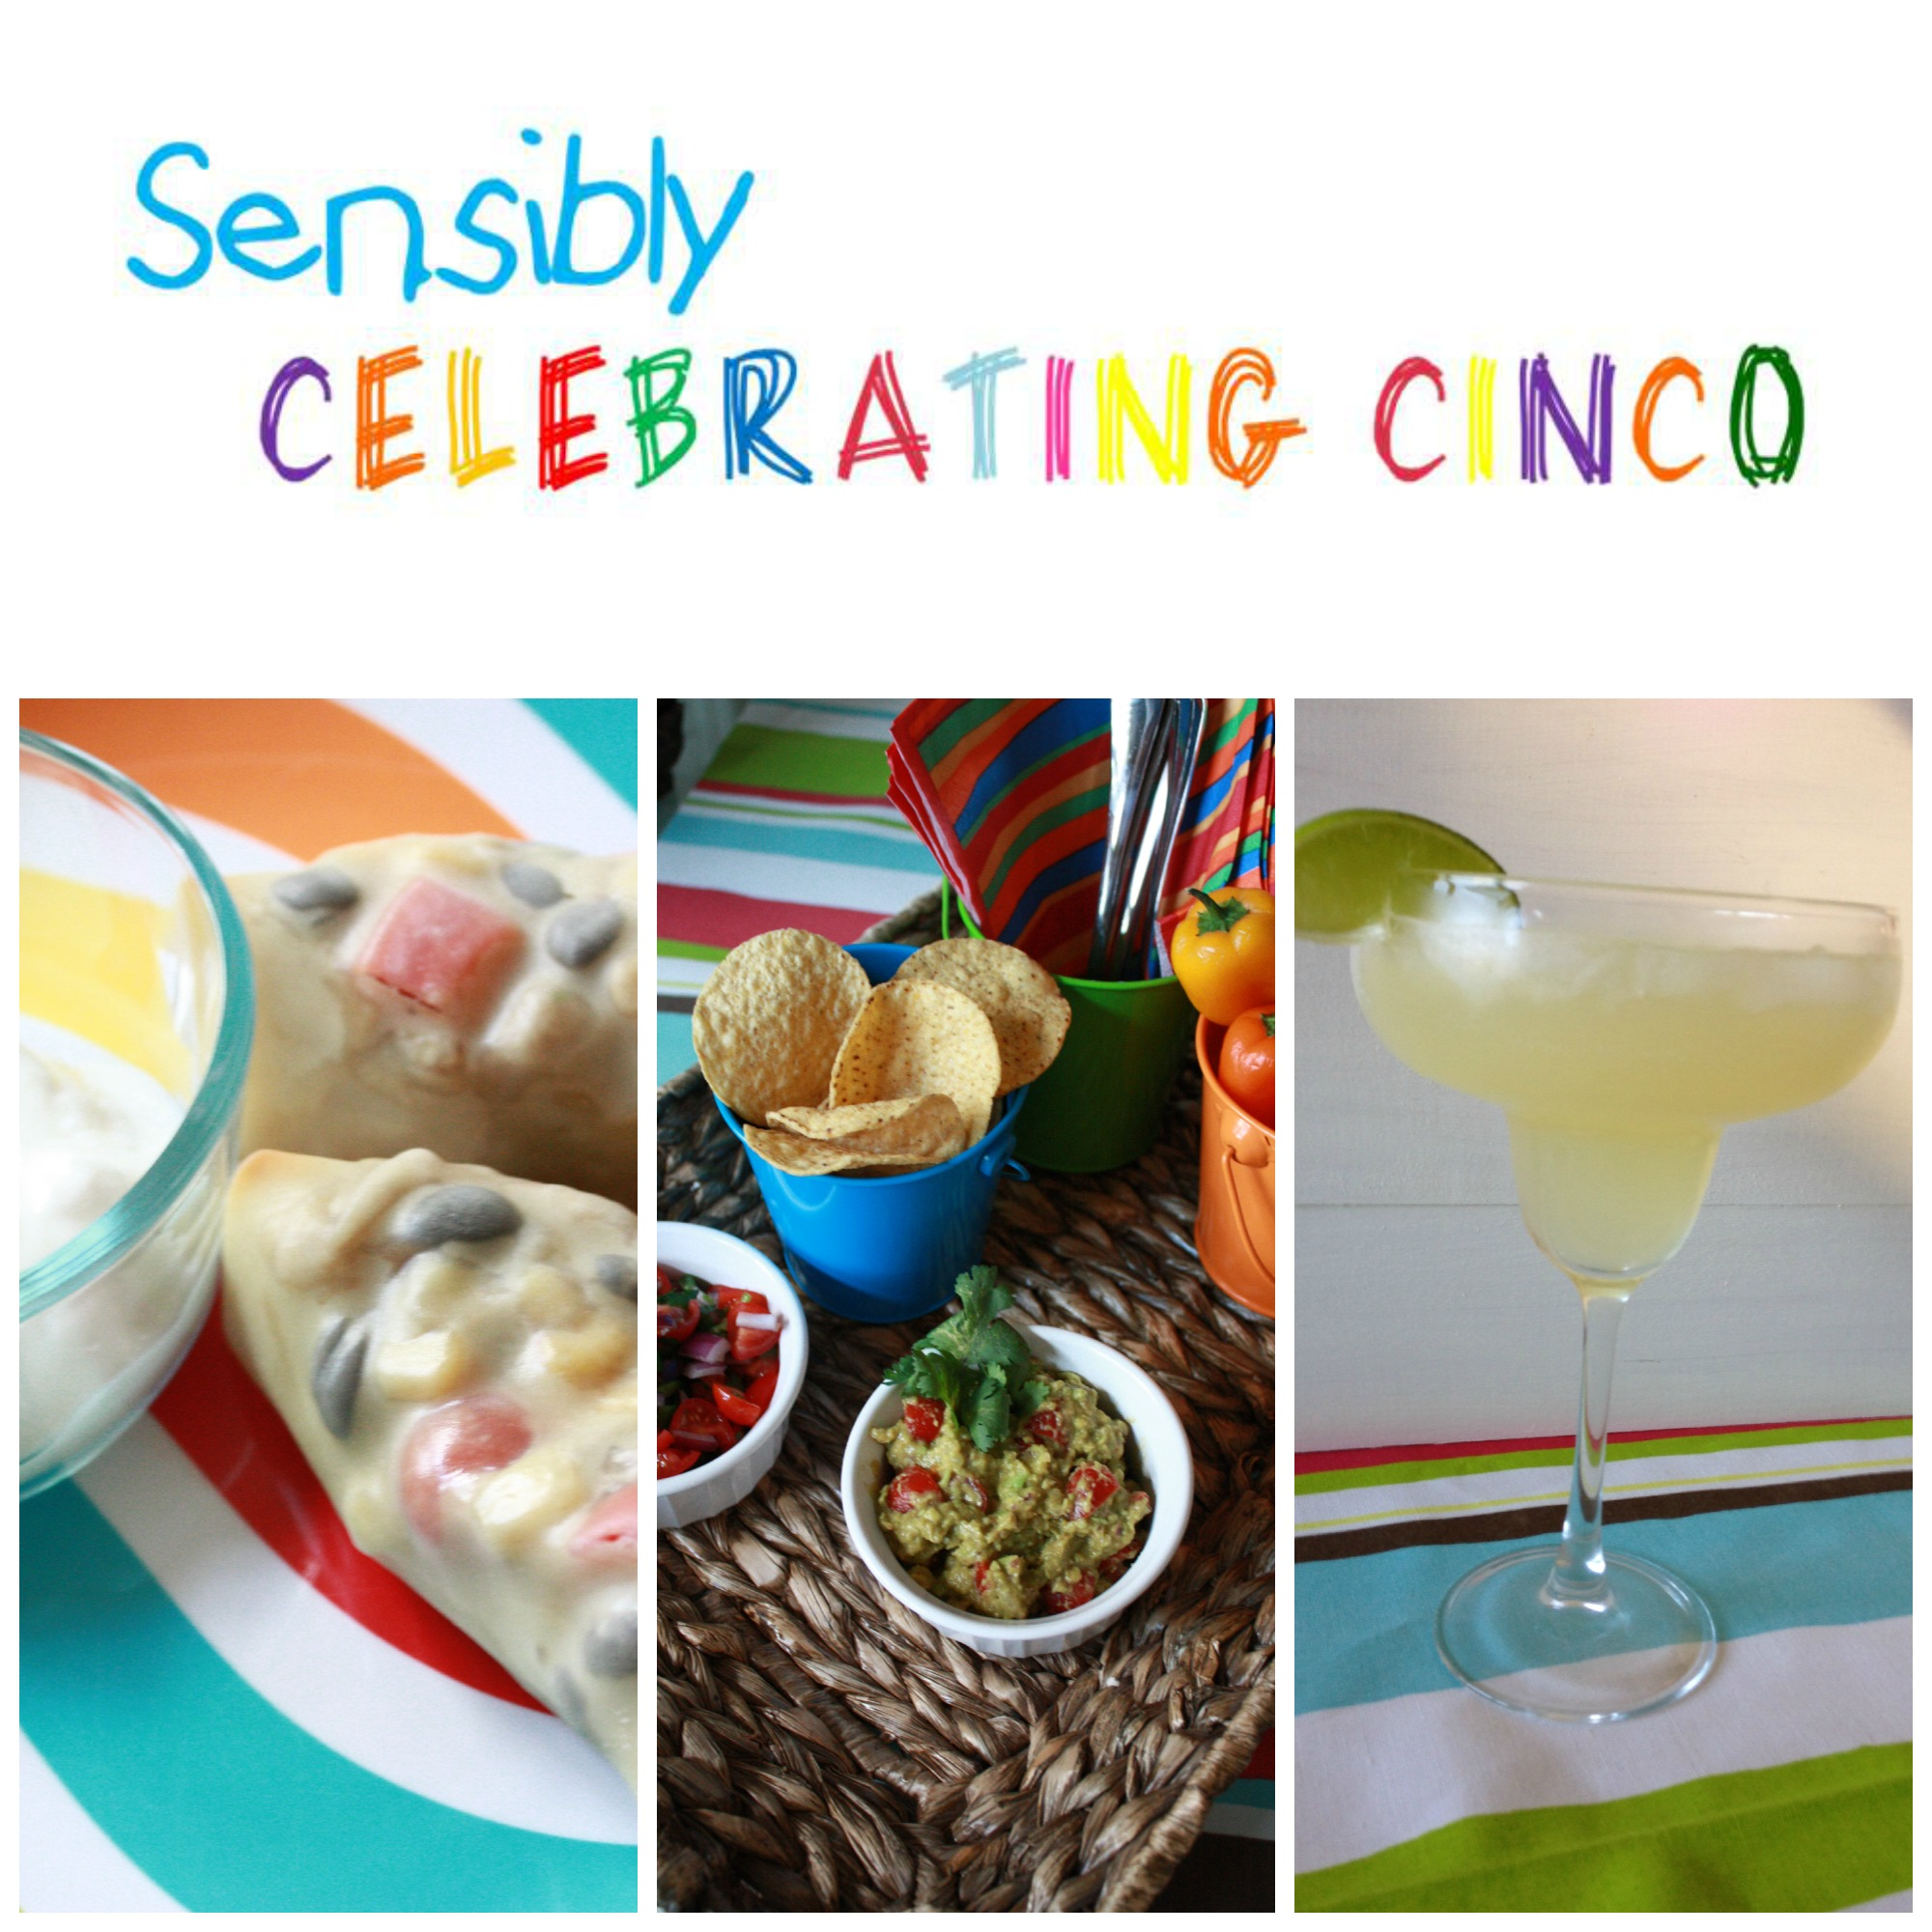 Sensibly Celebrating Cinco de Mayo